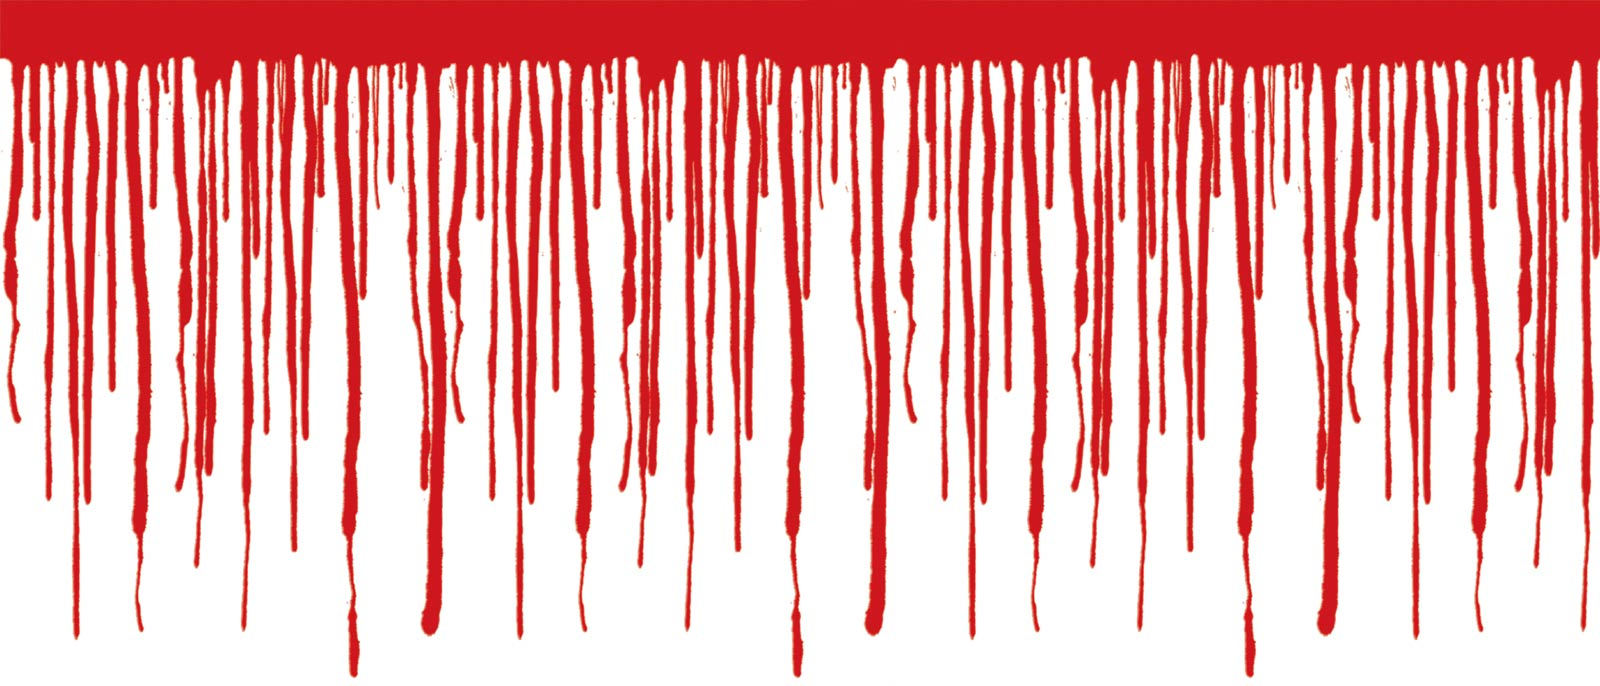 dripping blood clipart border free - photo #48